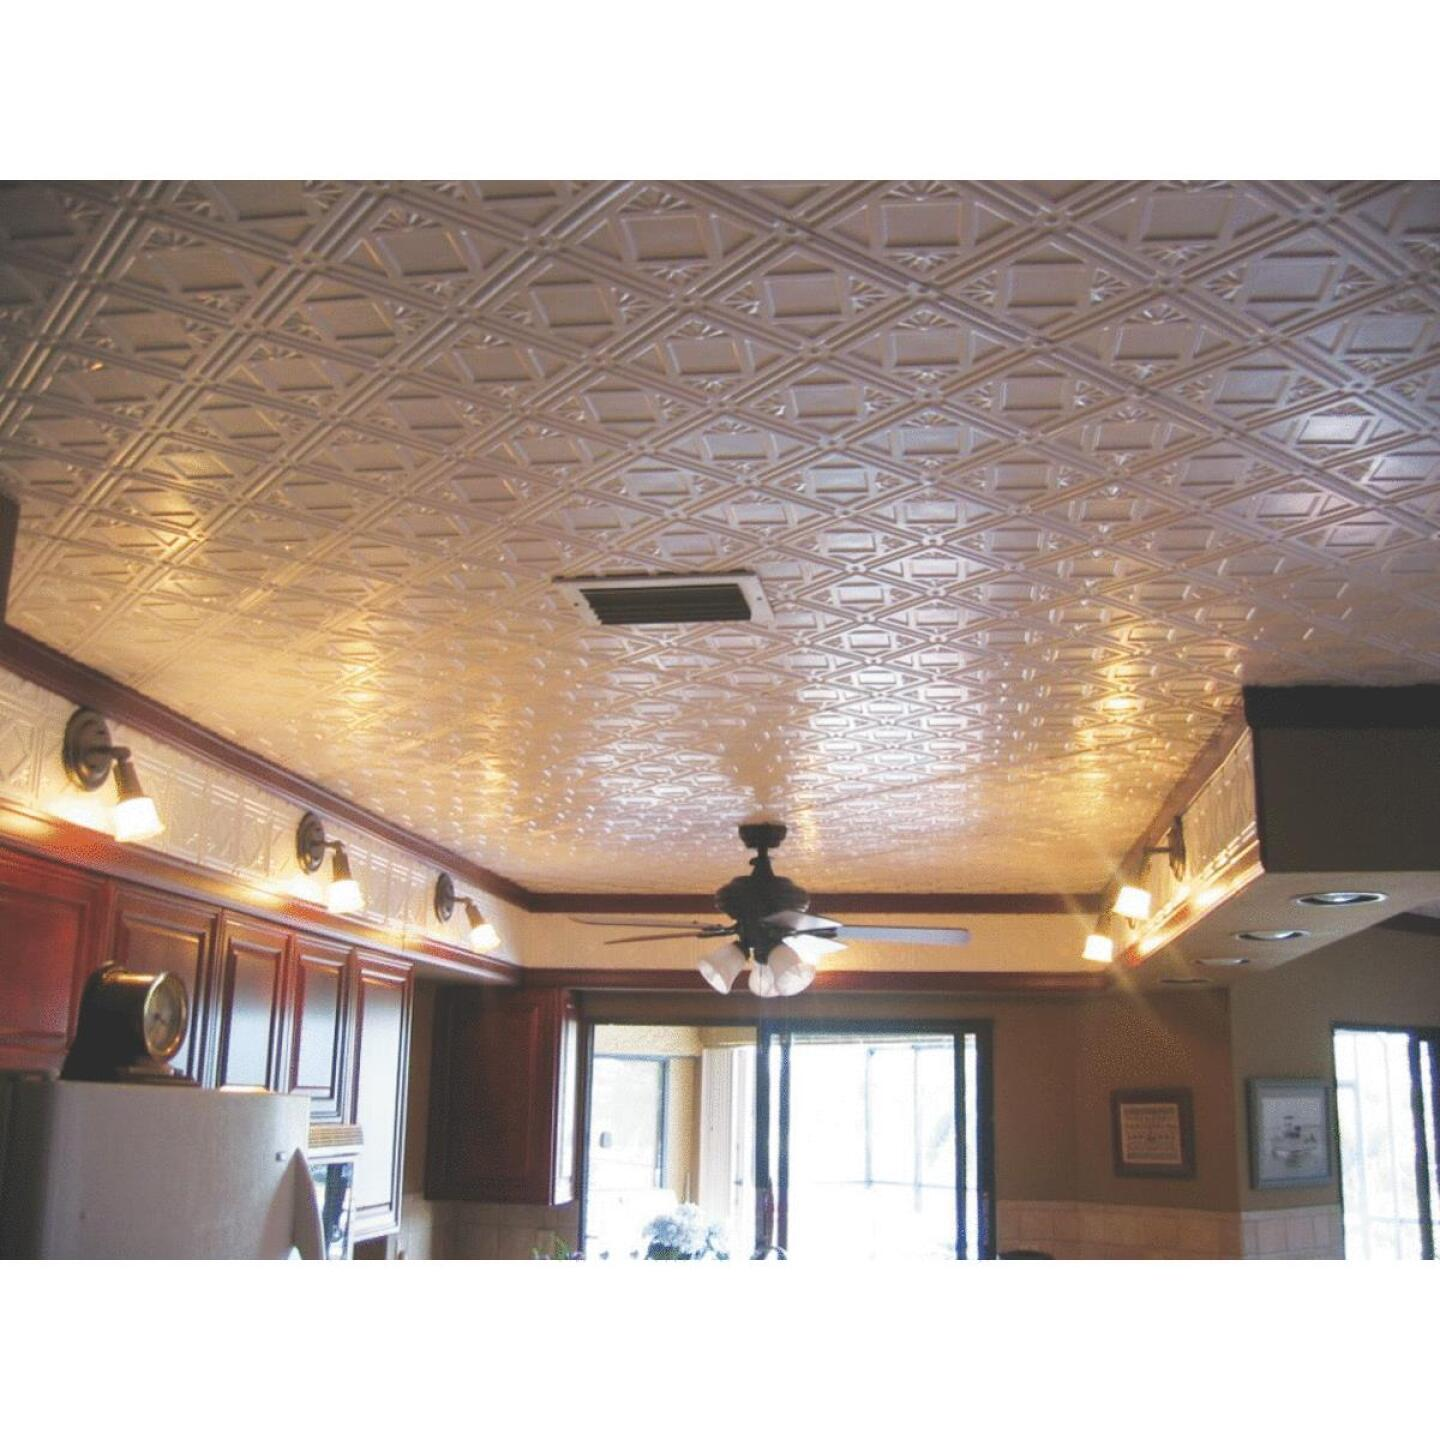 Dimensions 2 Ft. x 4 Ft. White 12 In. Square Pattern Tin Look Nonsuspended Ceiling Tile & Backsplash Image 3